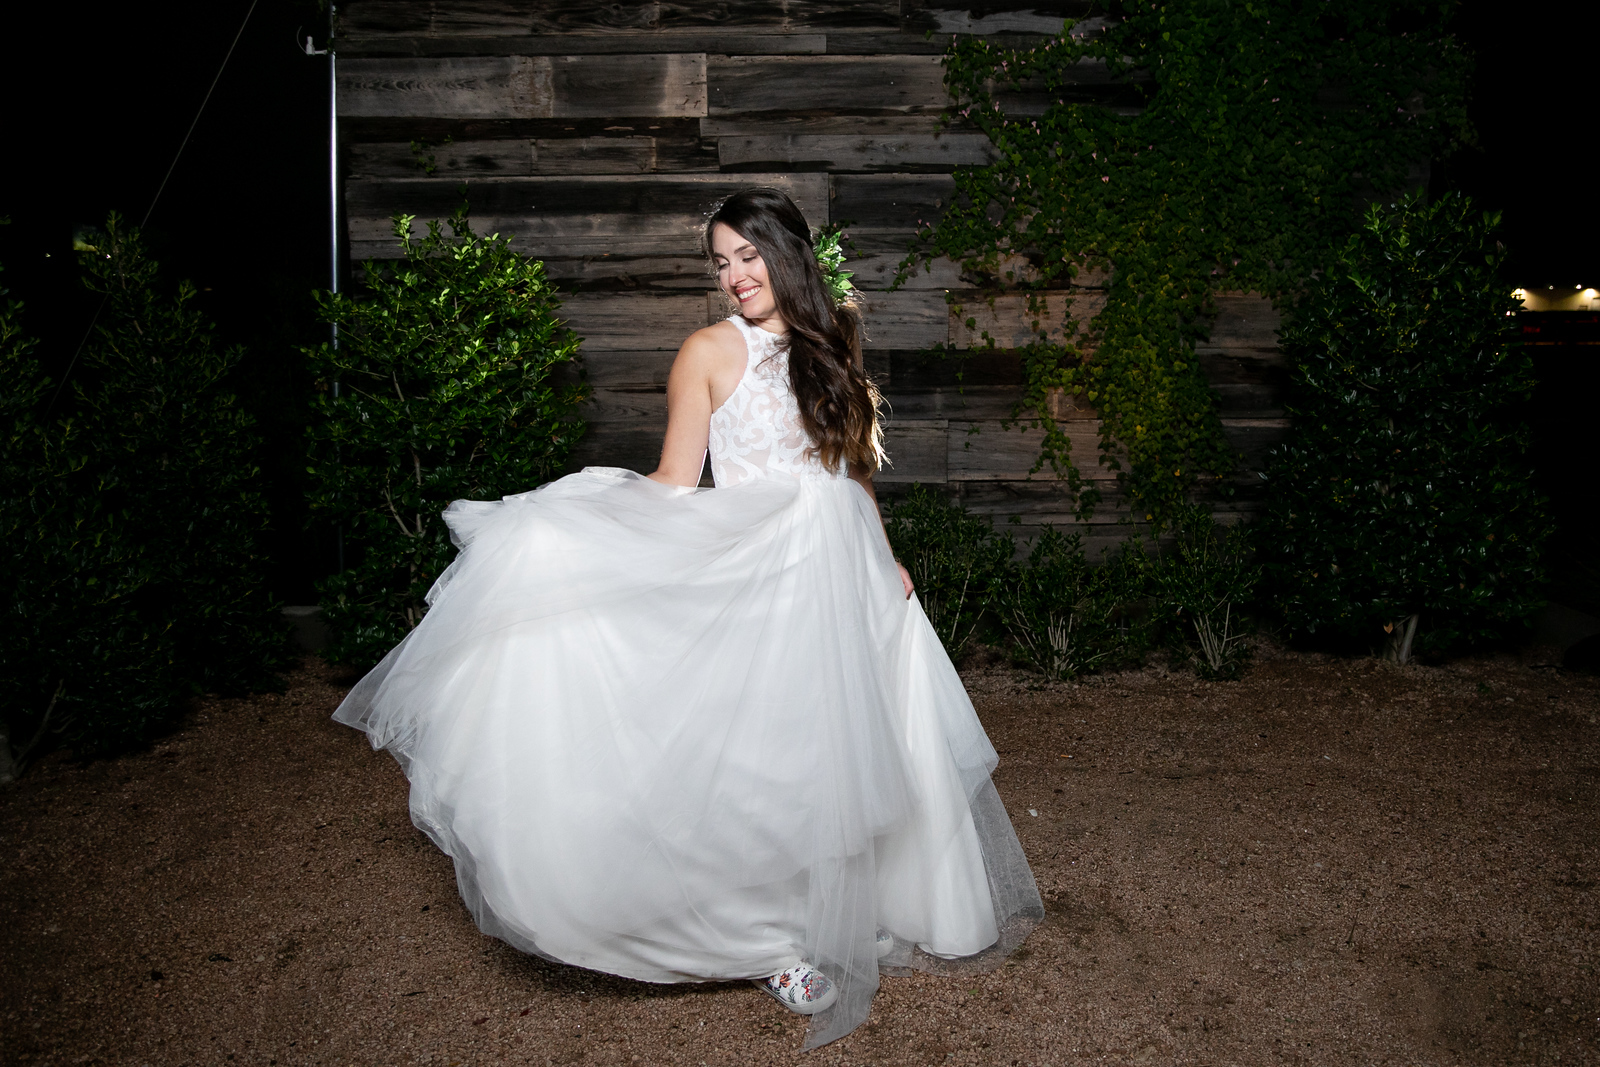 a bride walking through a gravel lot smiling as she looks down at her flowing princess style wedding gown